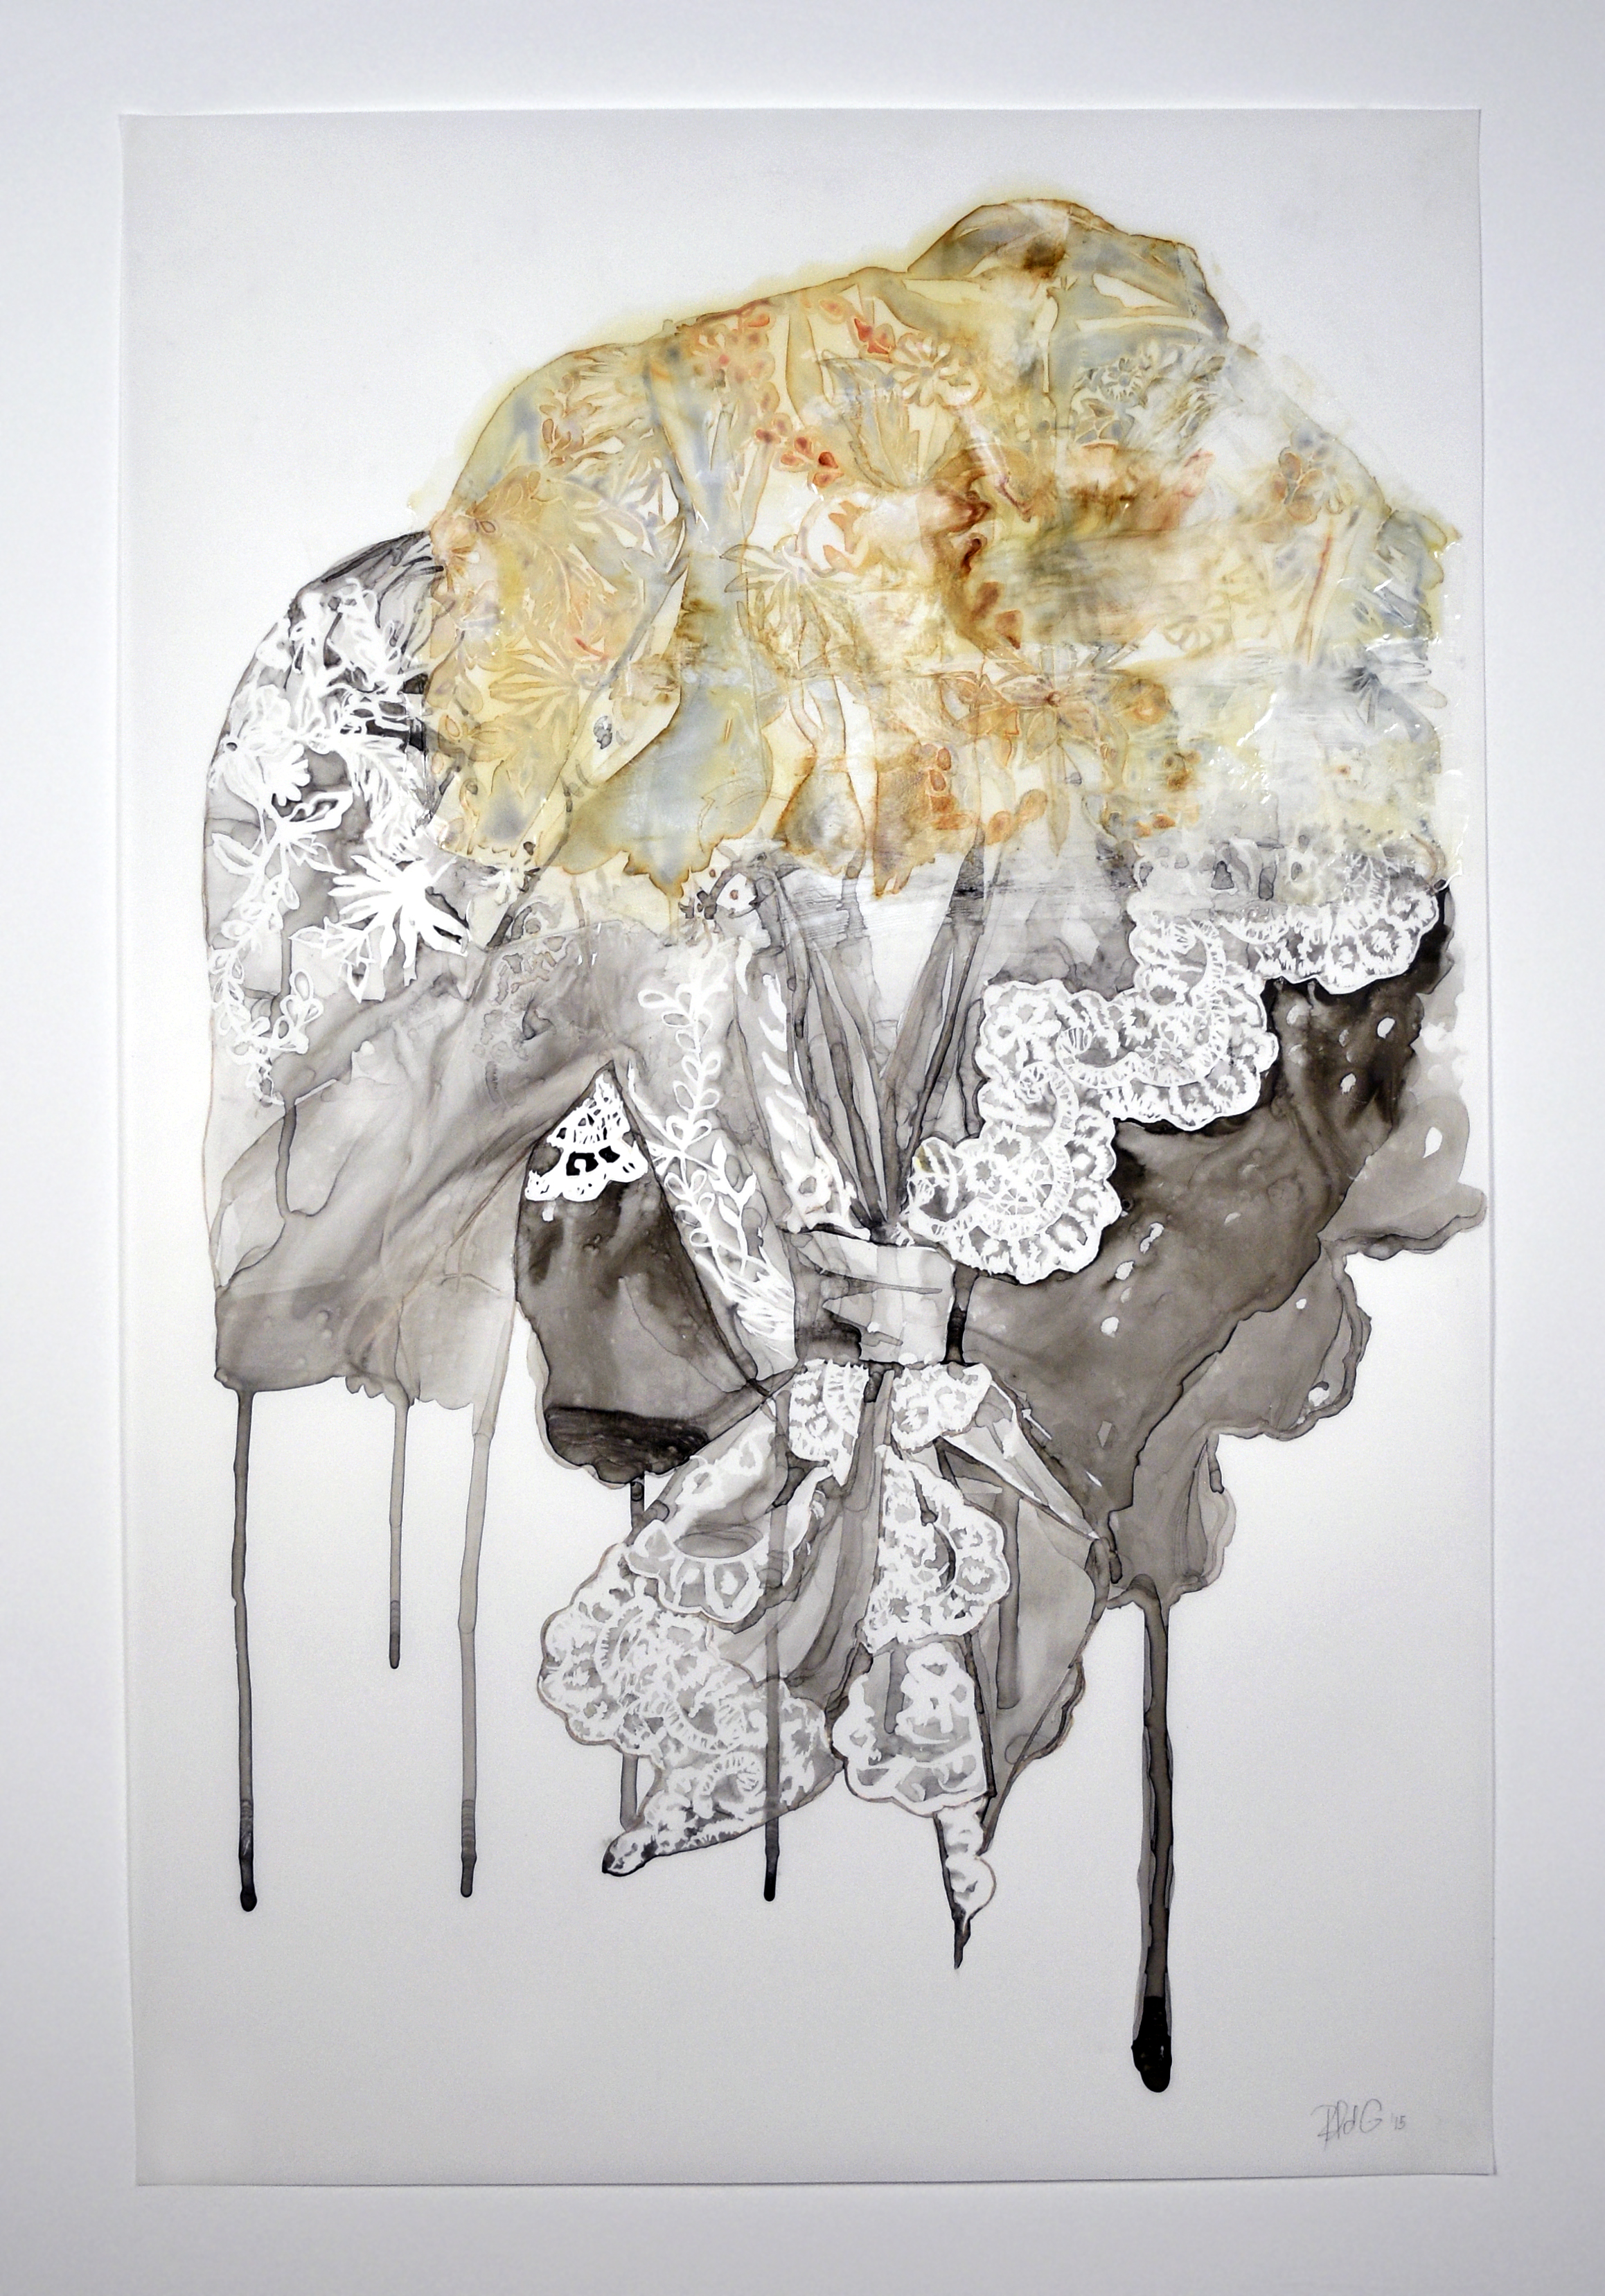 Monoprint, sumi ink, and acrylic medium on Yupo paper, 35 x 23 inches, 2015